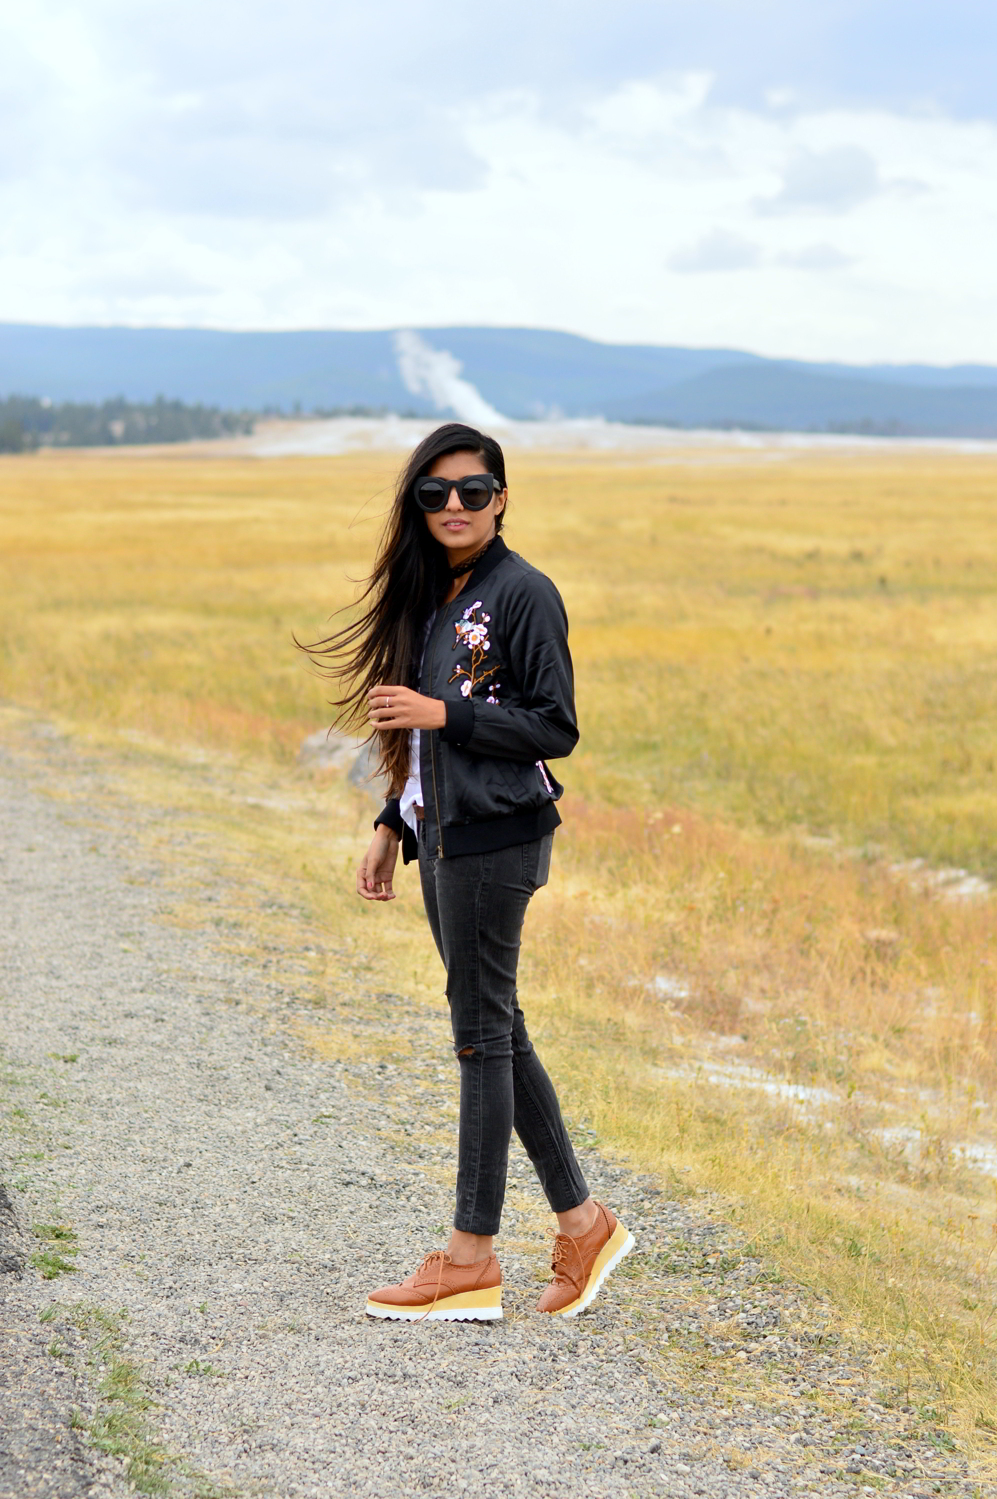 Grand-prismatic-spring-yellowstone-national-park-travel-guide-what-to-wear-outfit